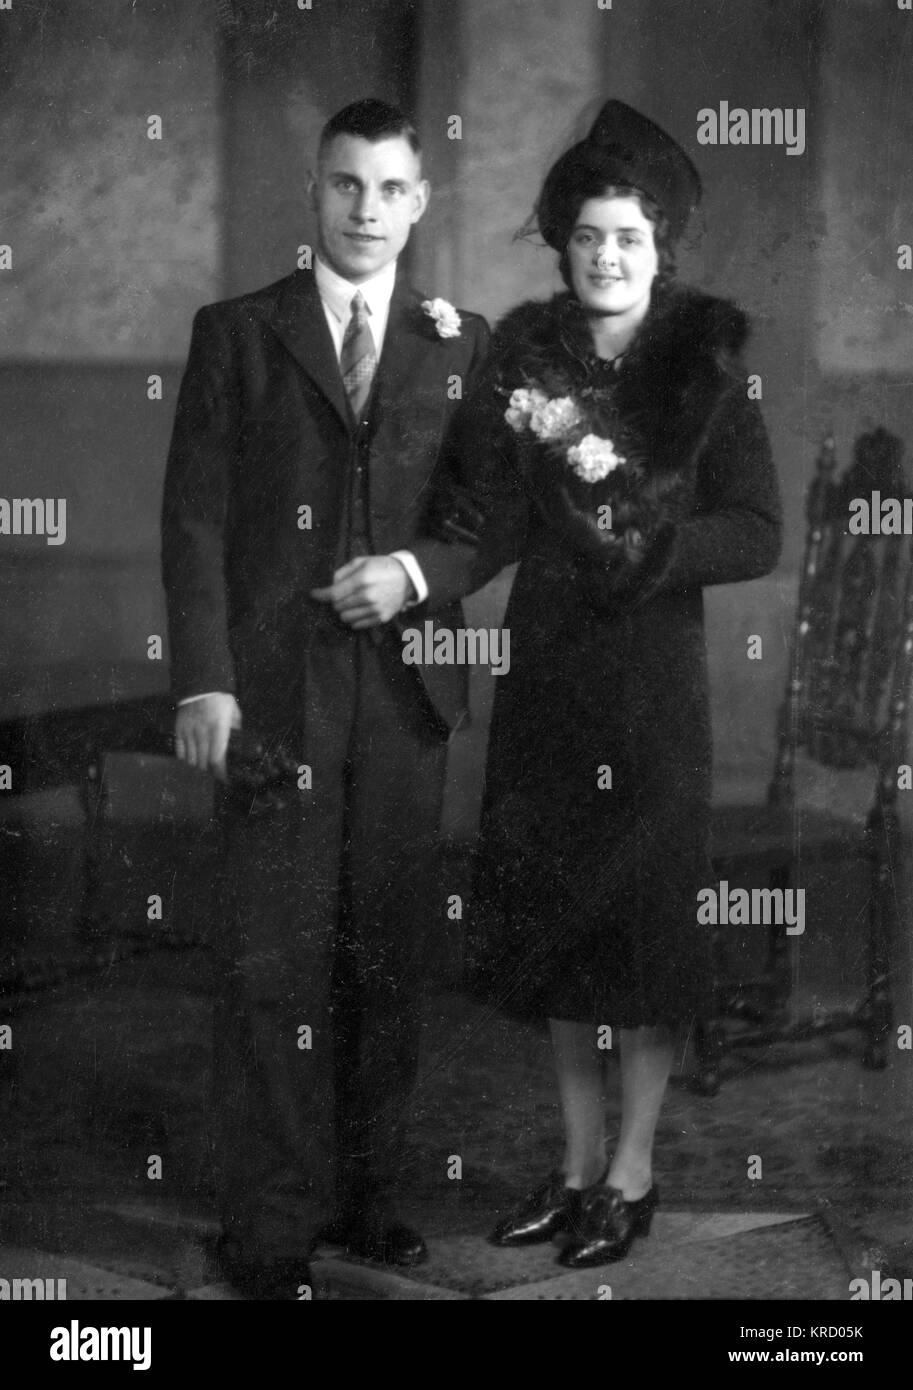 The happy couple in a wedding photo, dressed unusually in black!         Date: circa 1930s - Stock Image